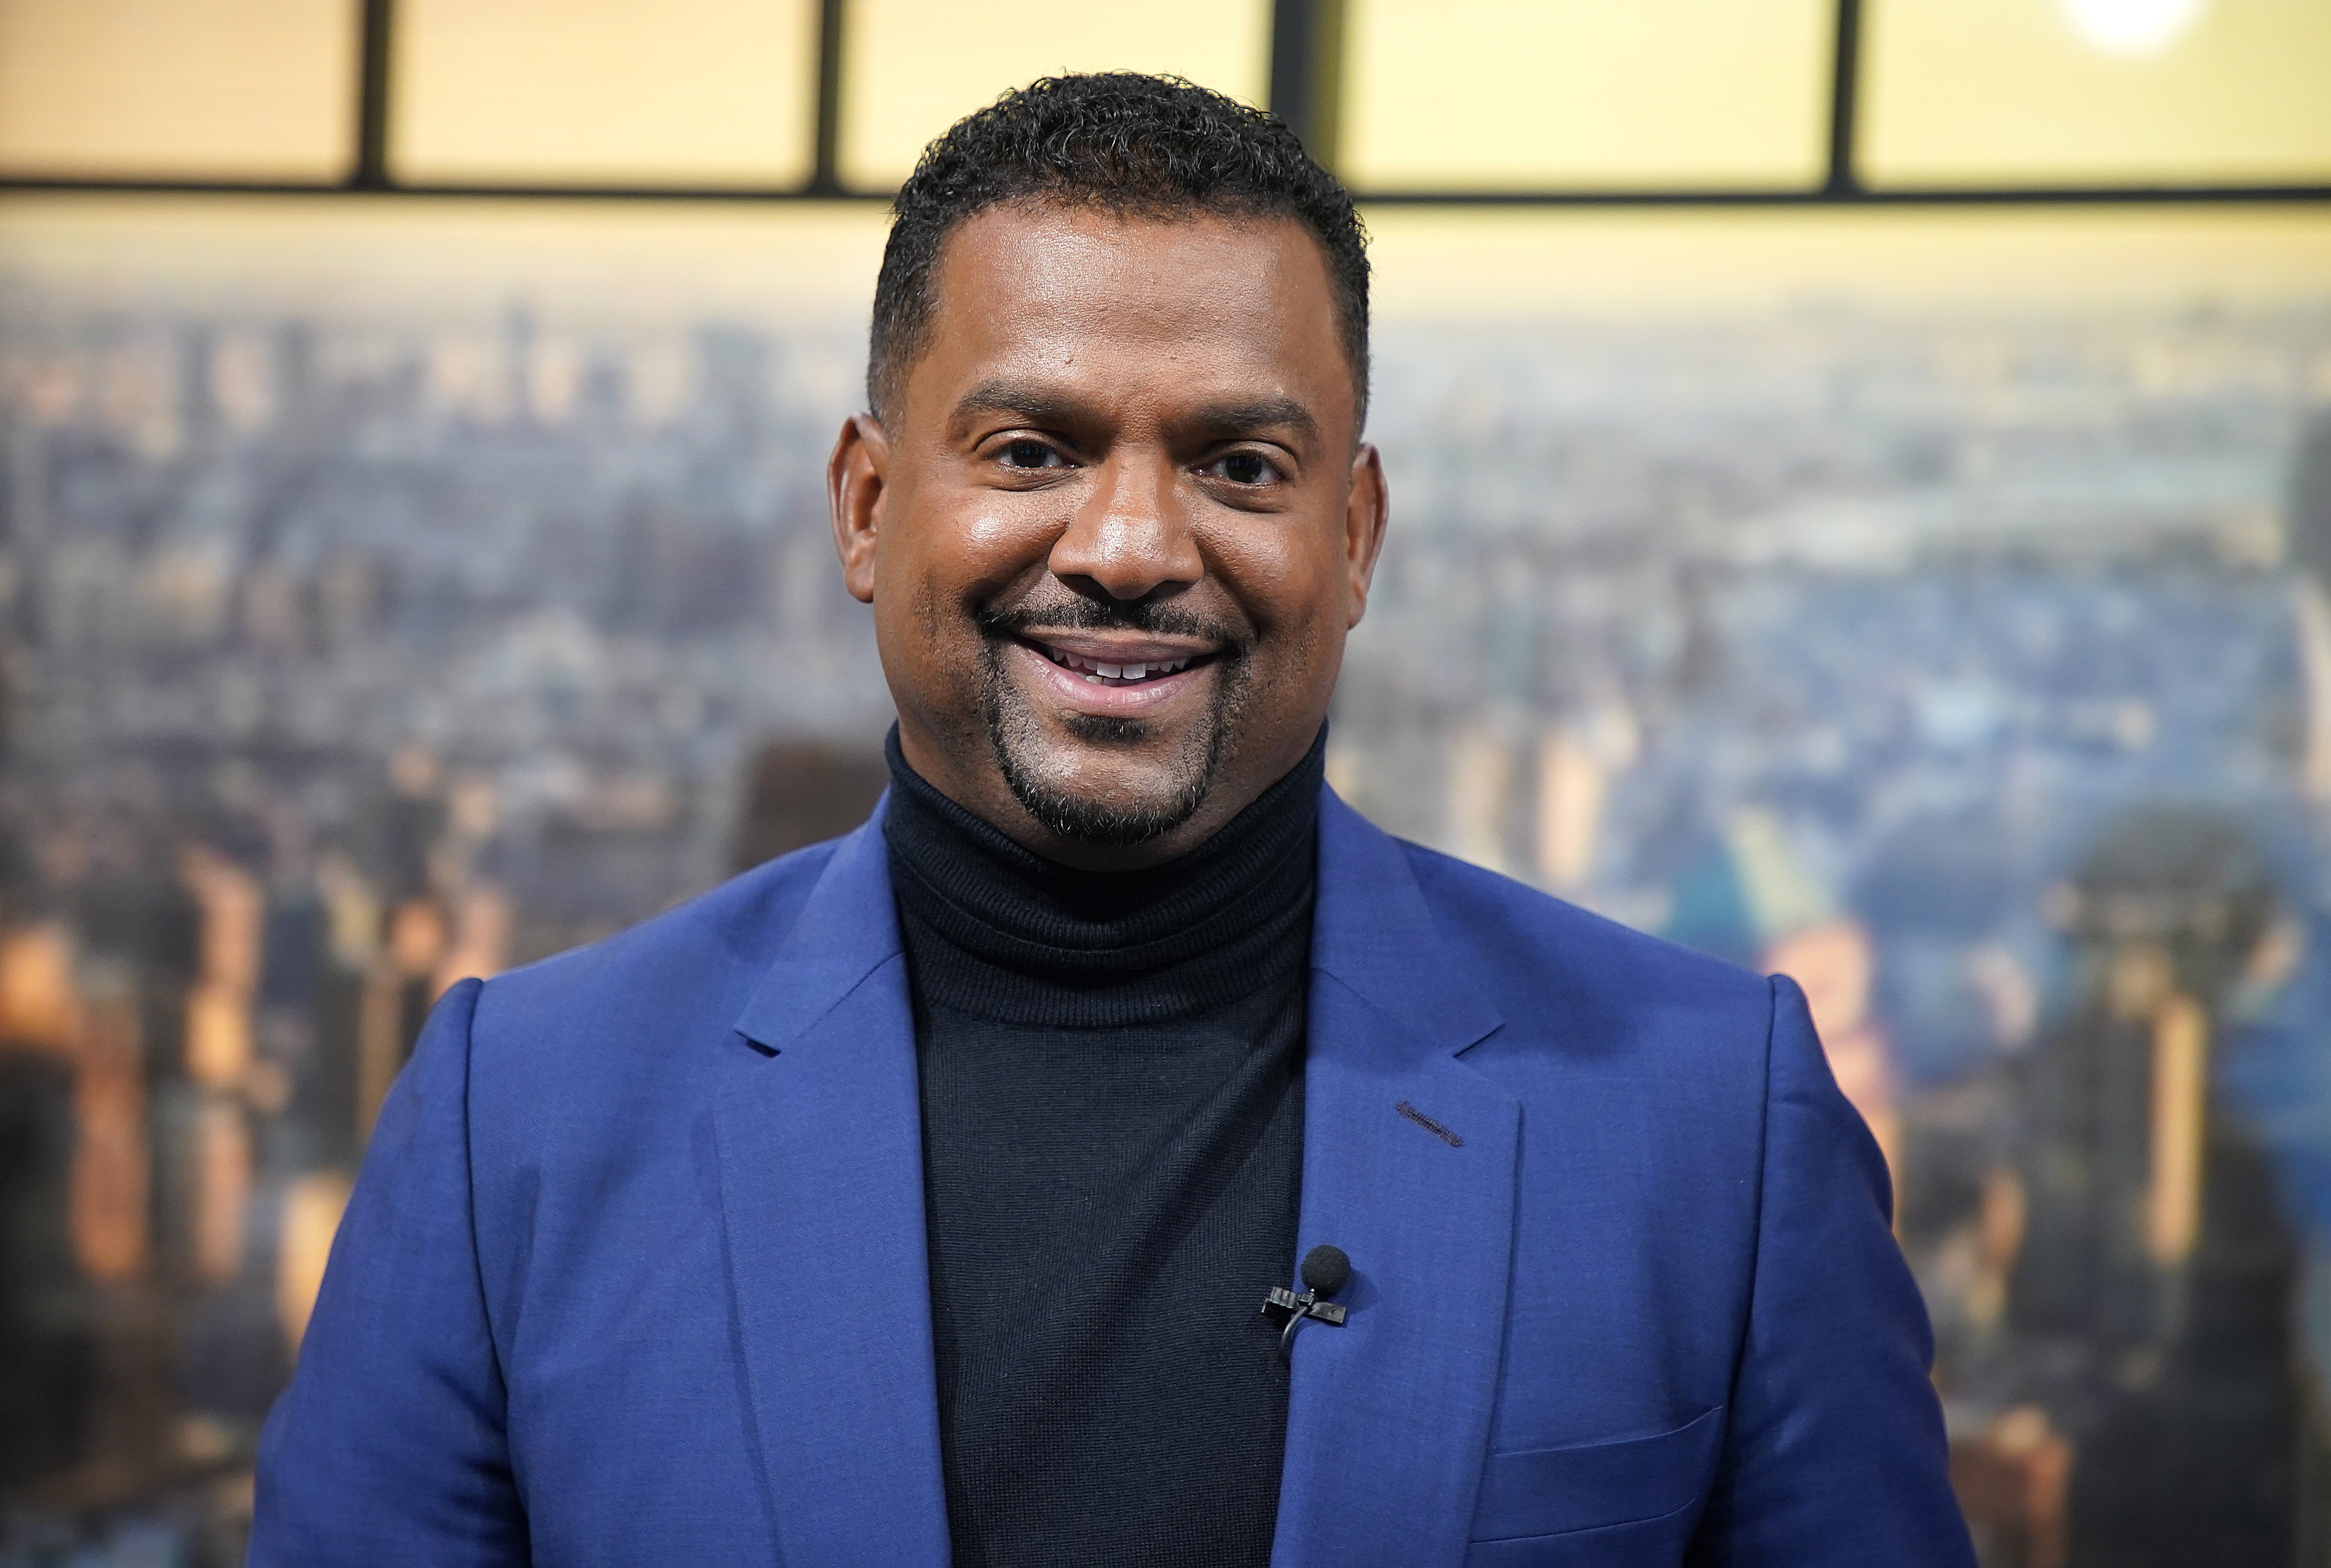 Alfonso Ribeiro besucht die People Now Studios in New York City am 14. November 2019. | Quelle: Getty Images